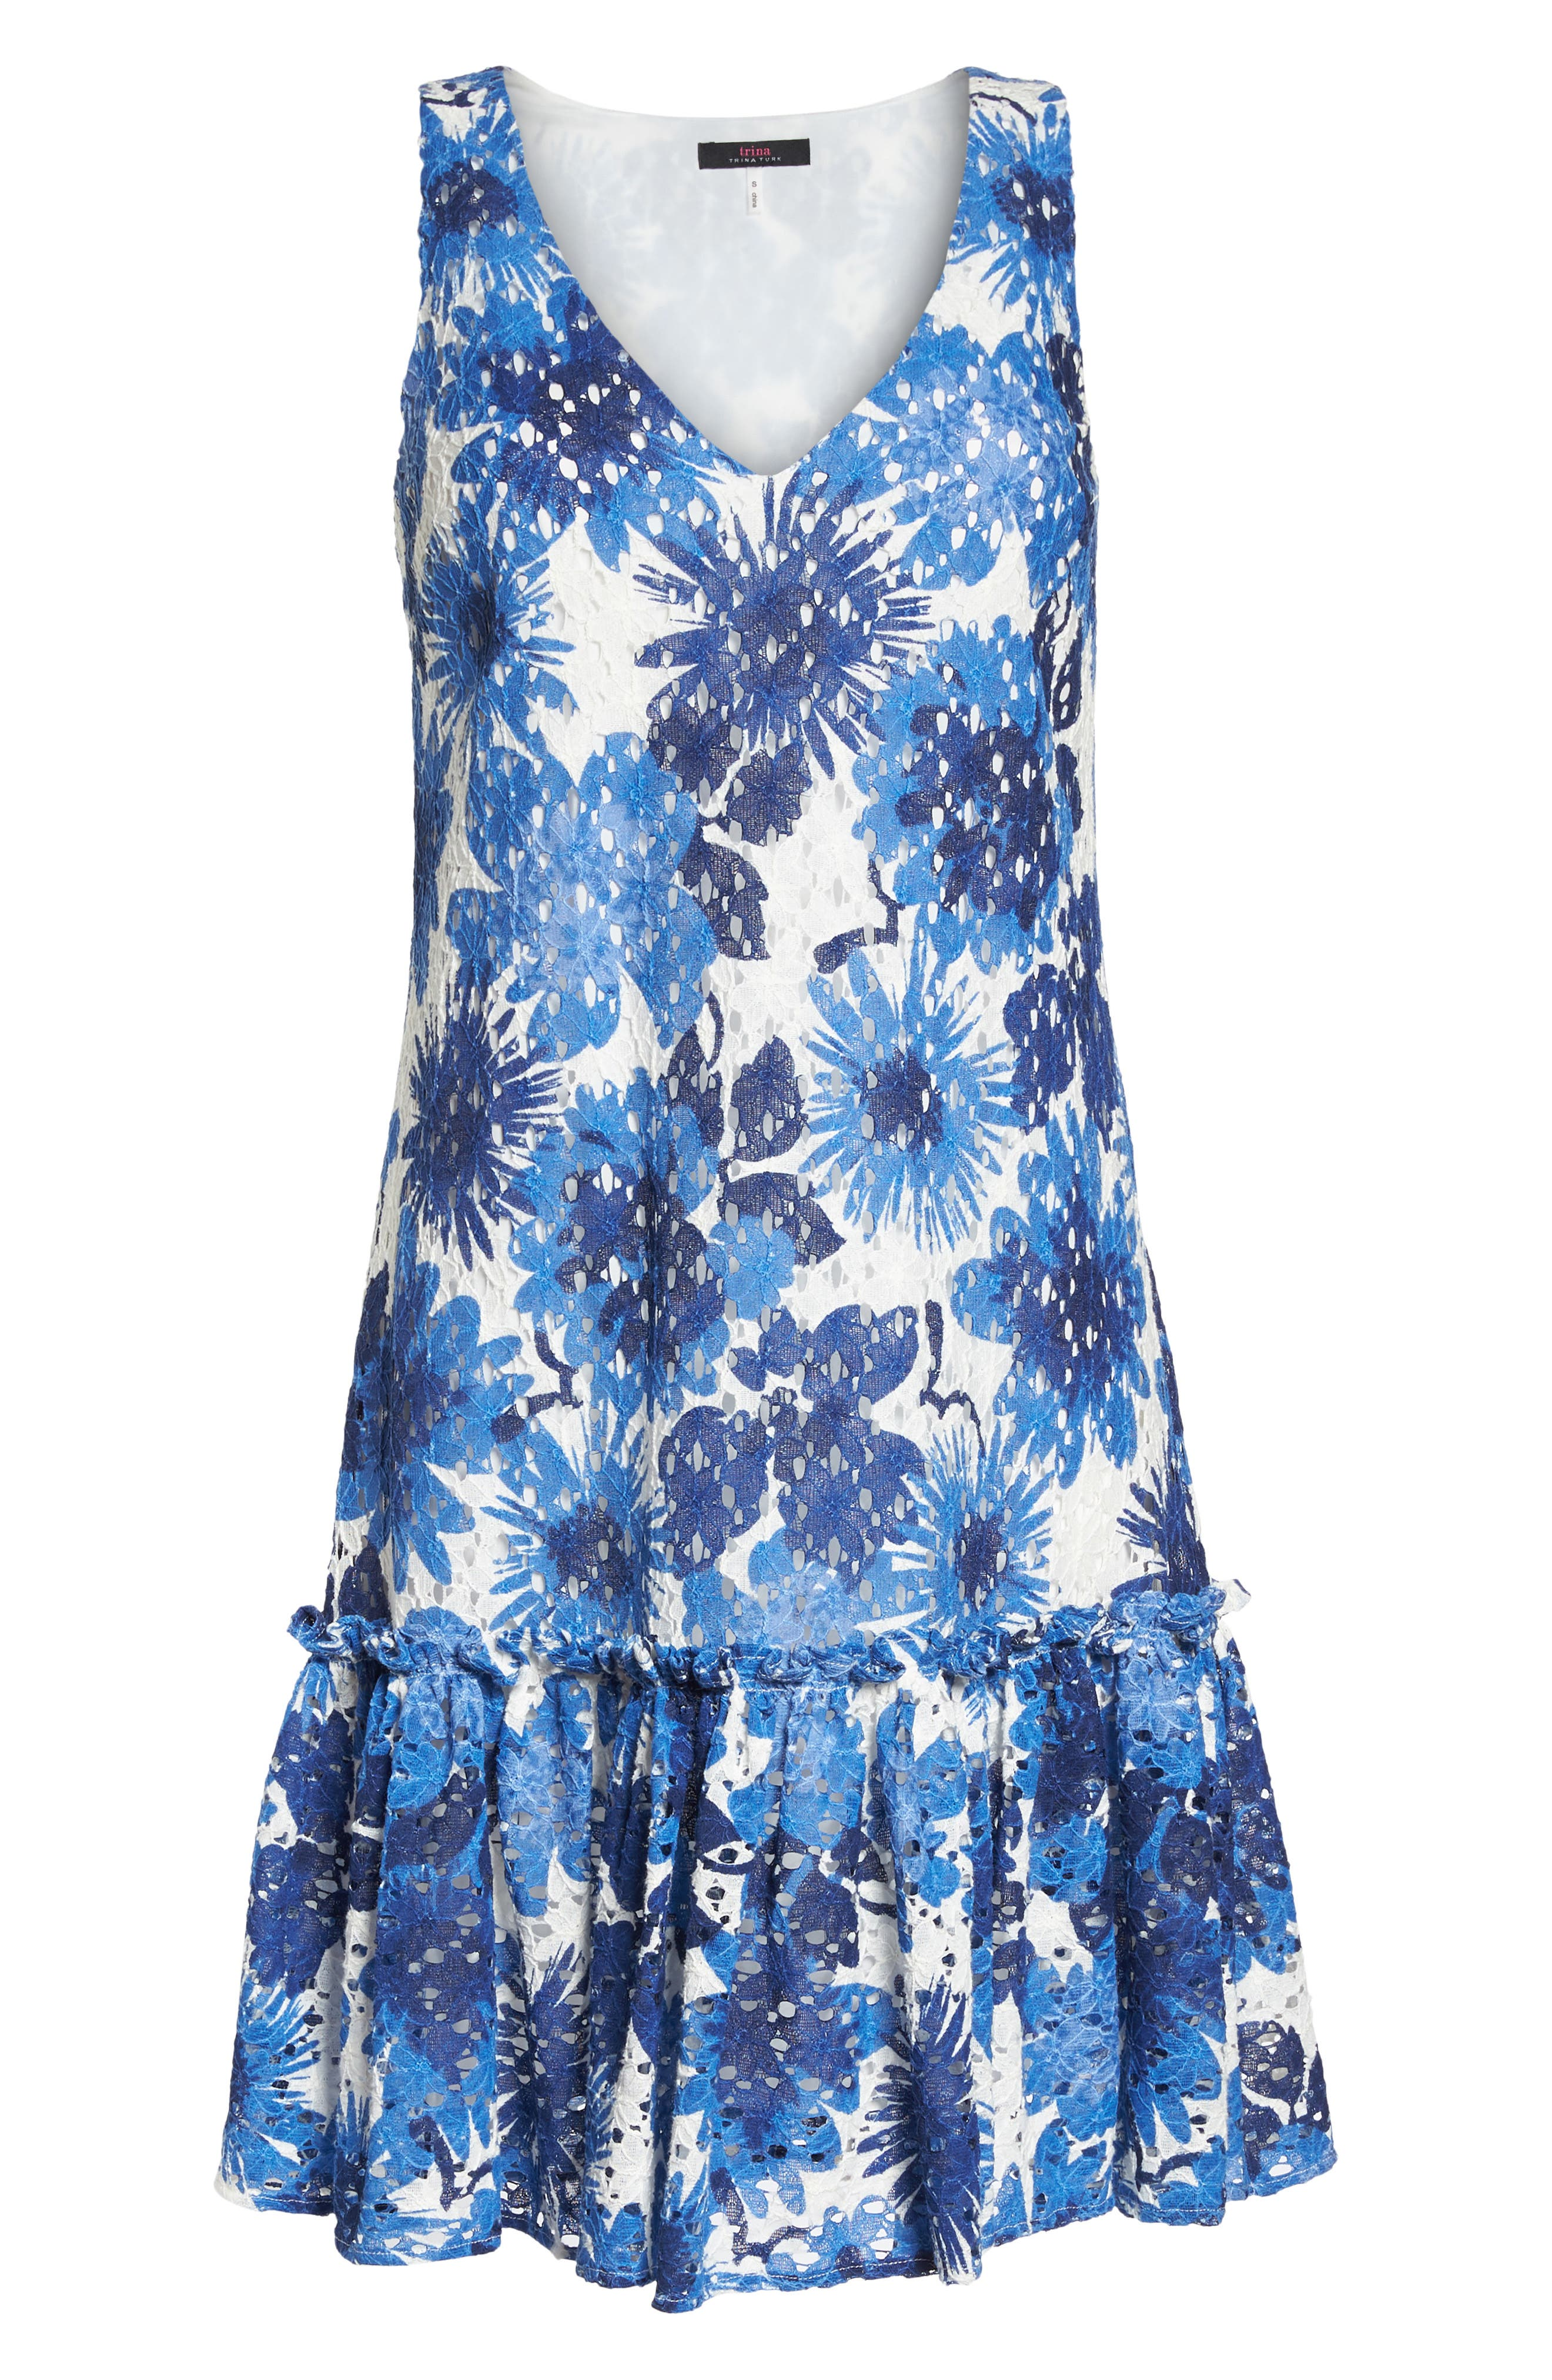 La Costa Print Ruffle Hem Lace Dress,                             Alternate thumbnail 6, color,                             Multi